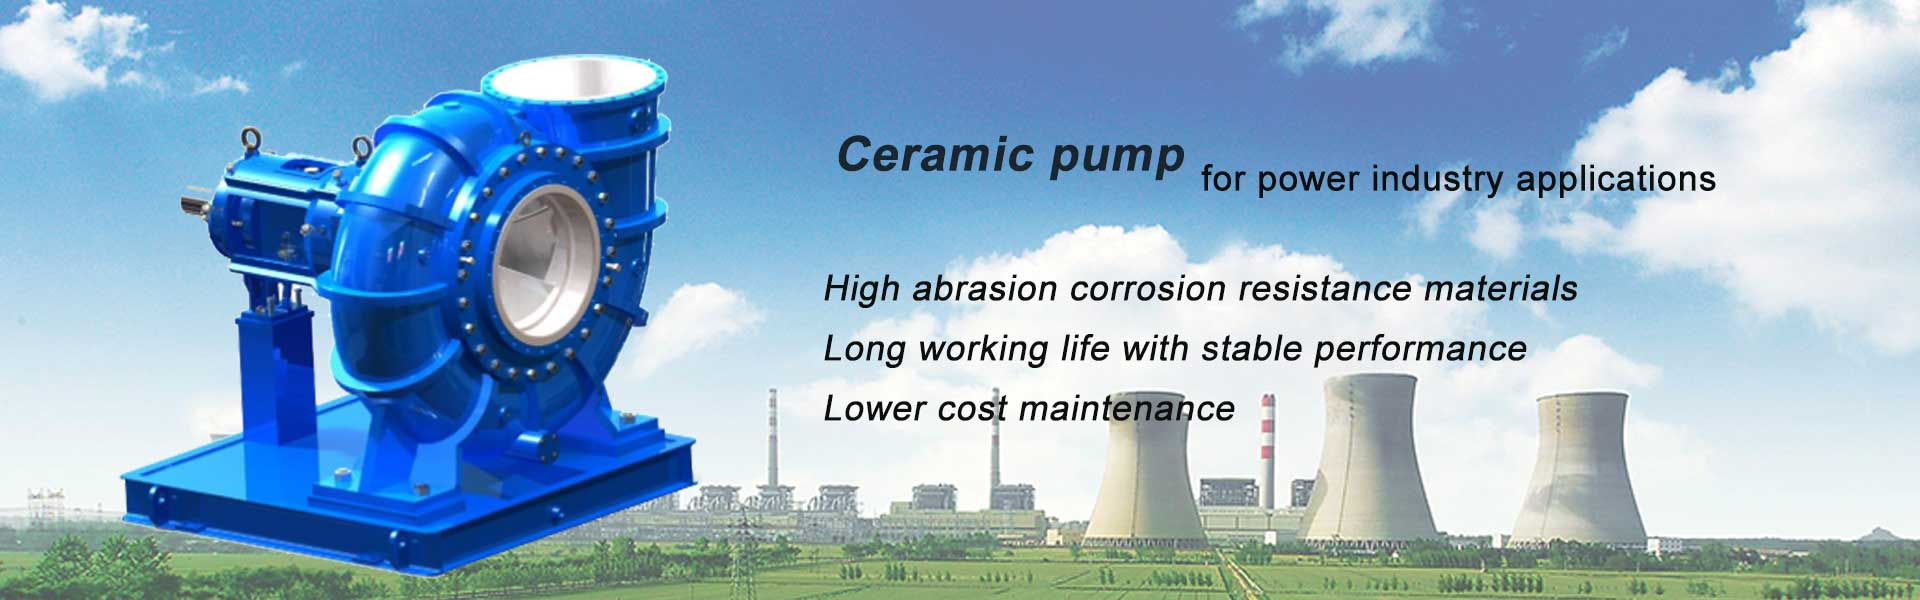 ceamic pump